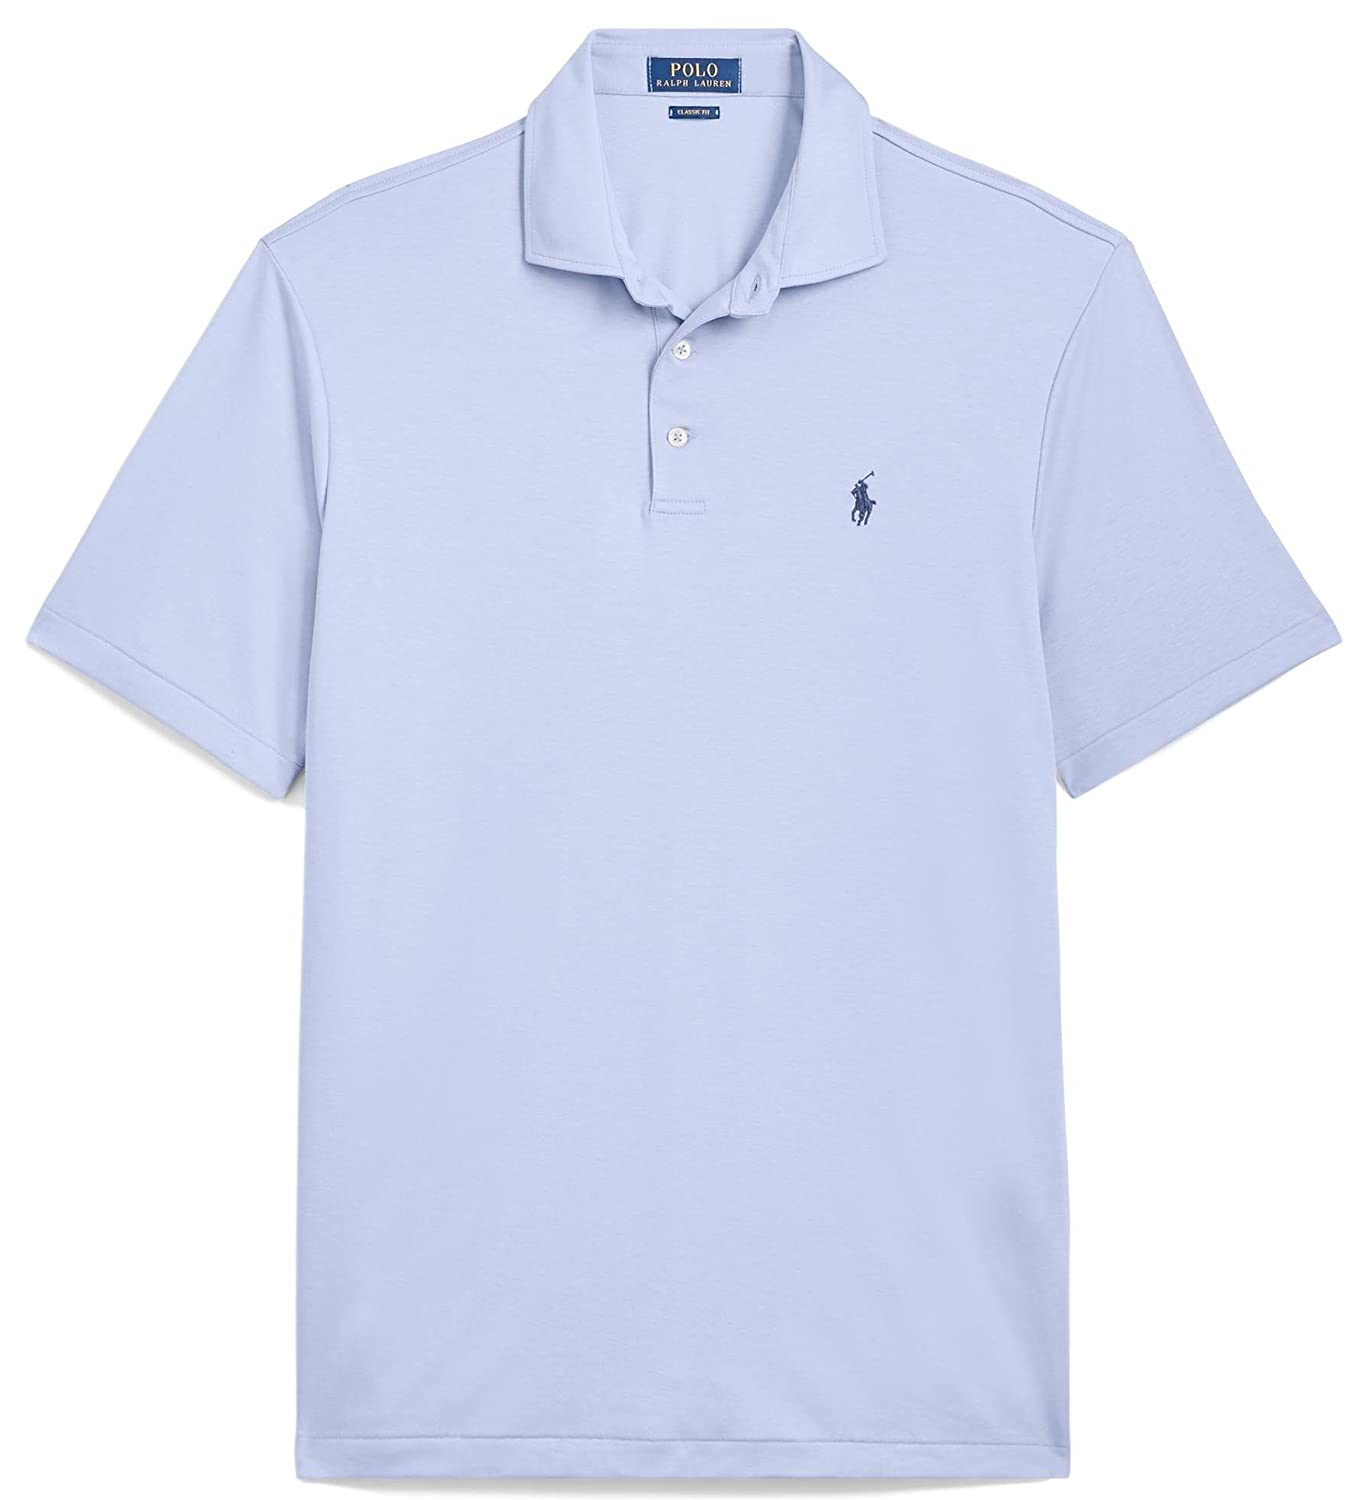 fbc5308e Ralph Lauren Polo Classic Fit Soft-Touch (Austin Blue, XL) at Amazon Men's  Clothing store: